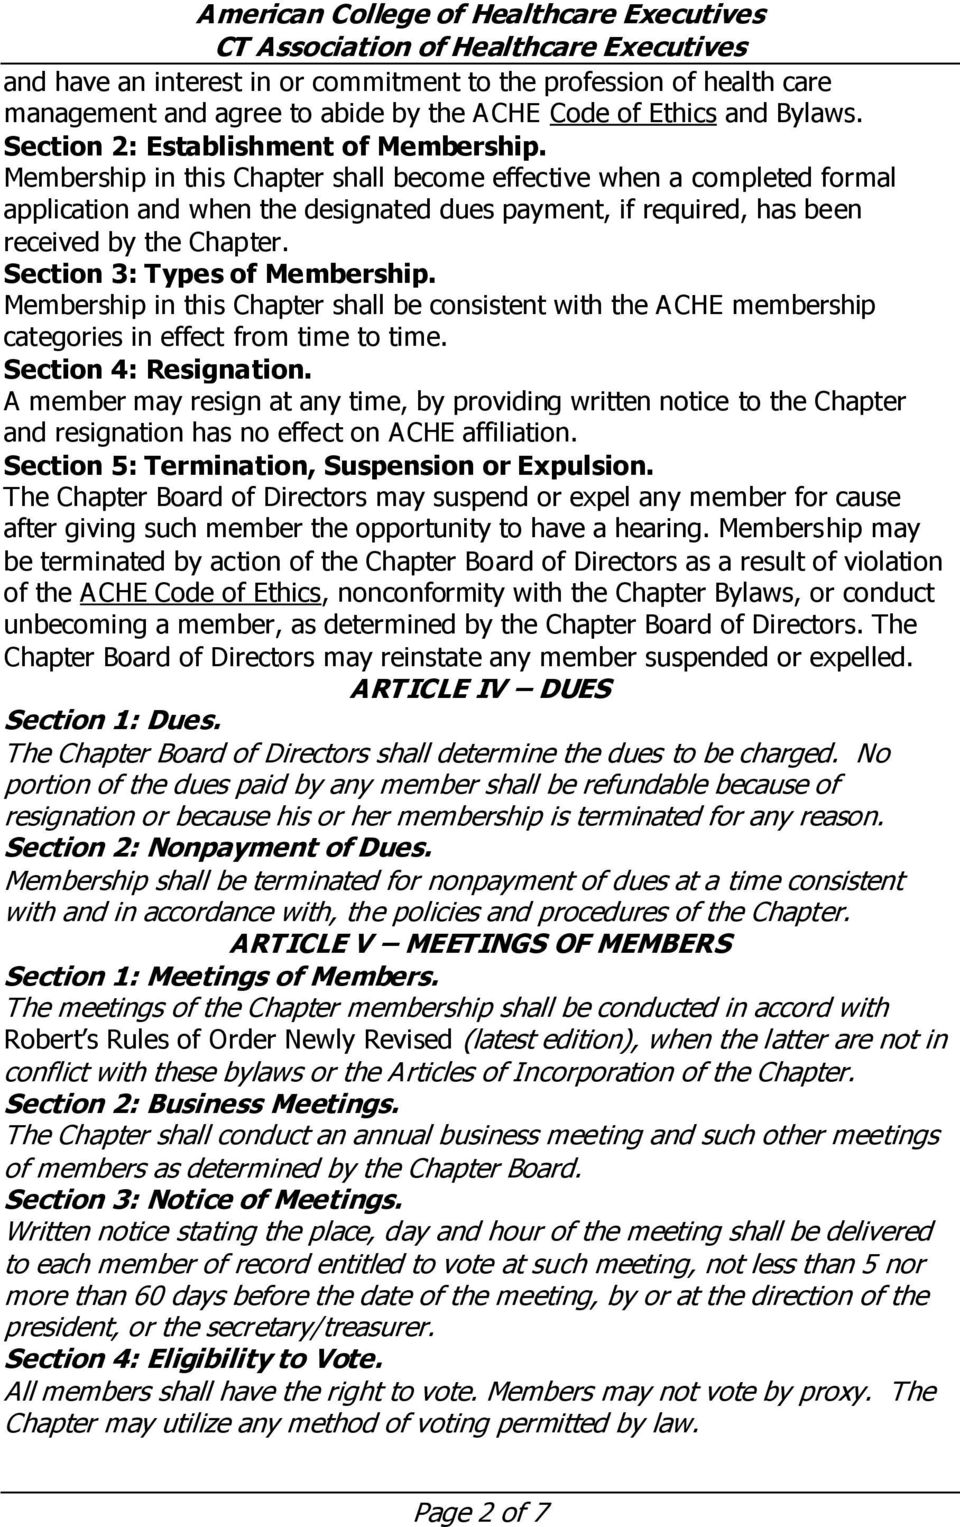 Section 3: Types of Membership. Membership in this Chapter shall be consistent with the ACHE membership categories in effect from time to time. Section 4: Resignation.